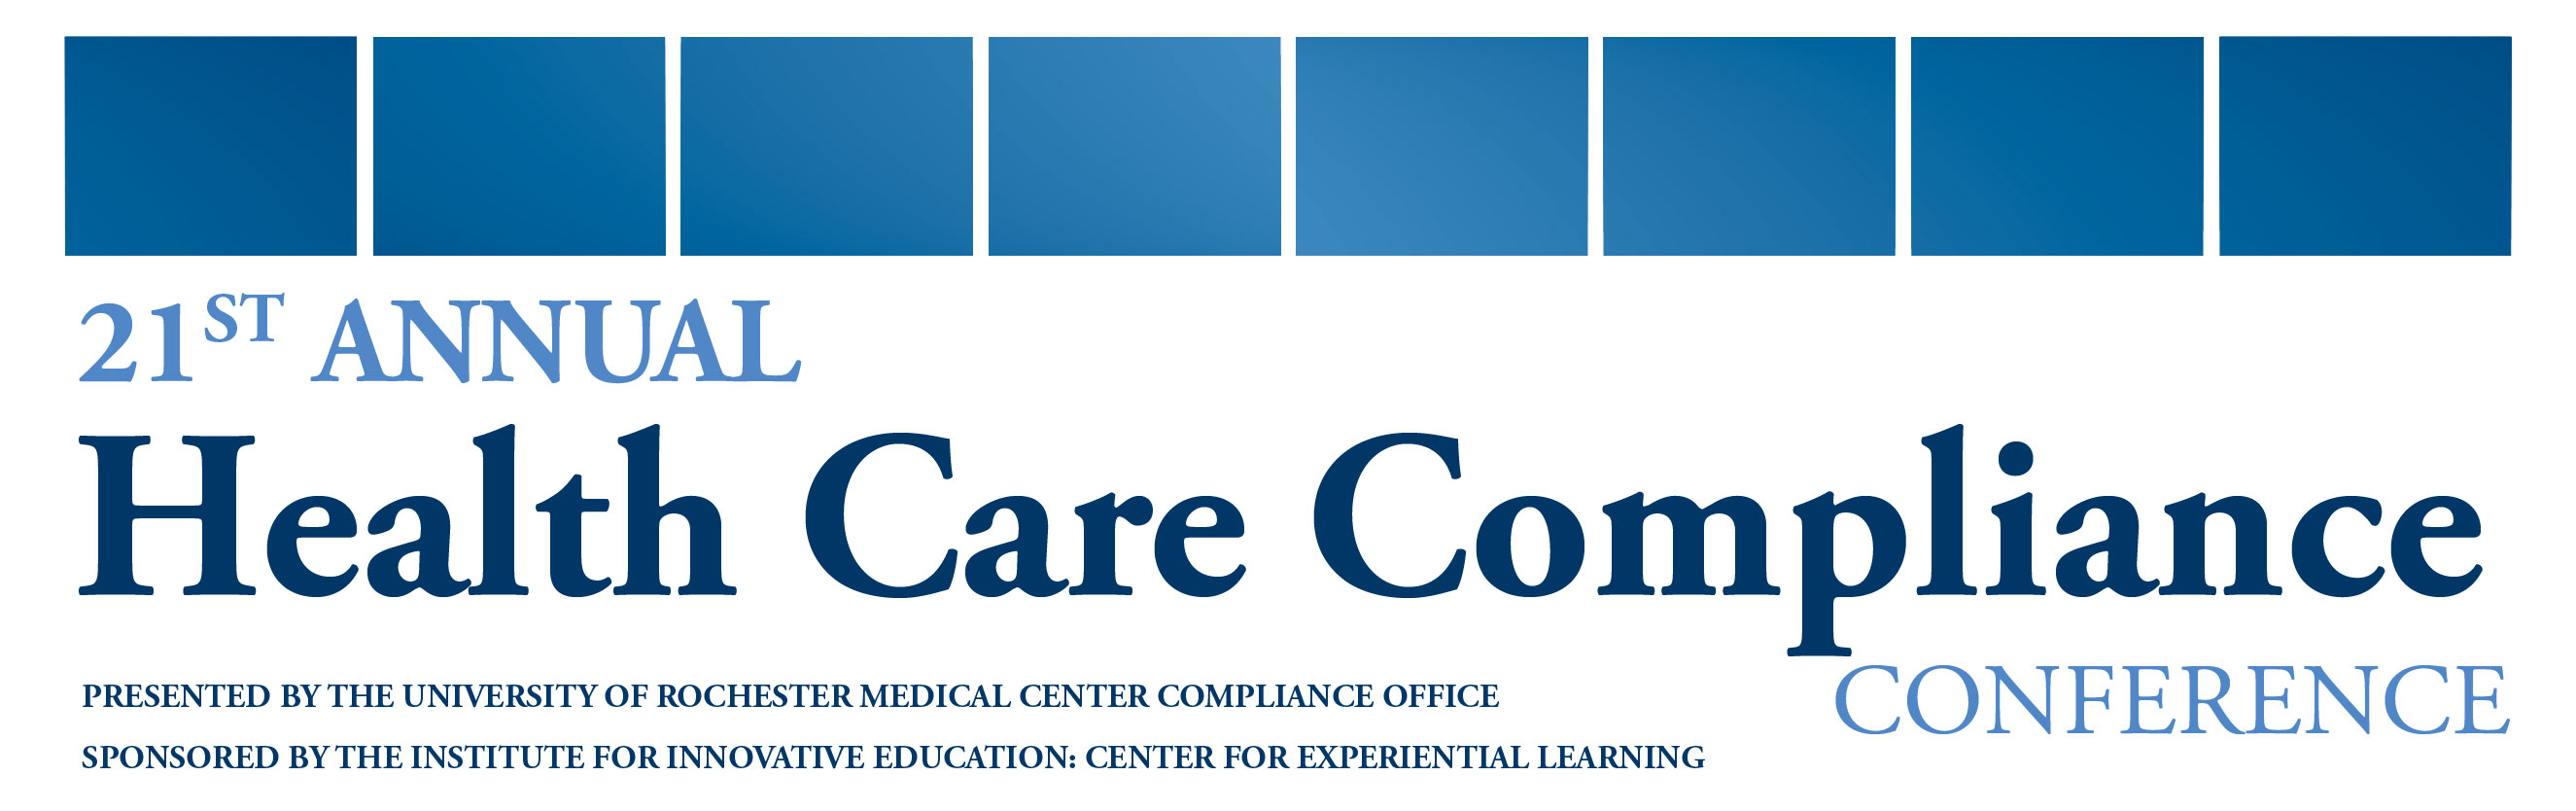 21st Annual Health Care Compliance Conference